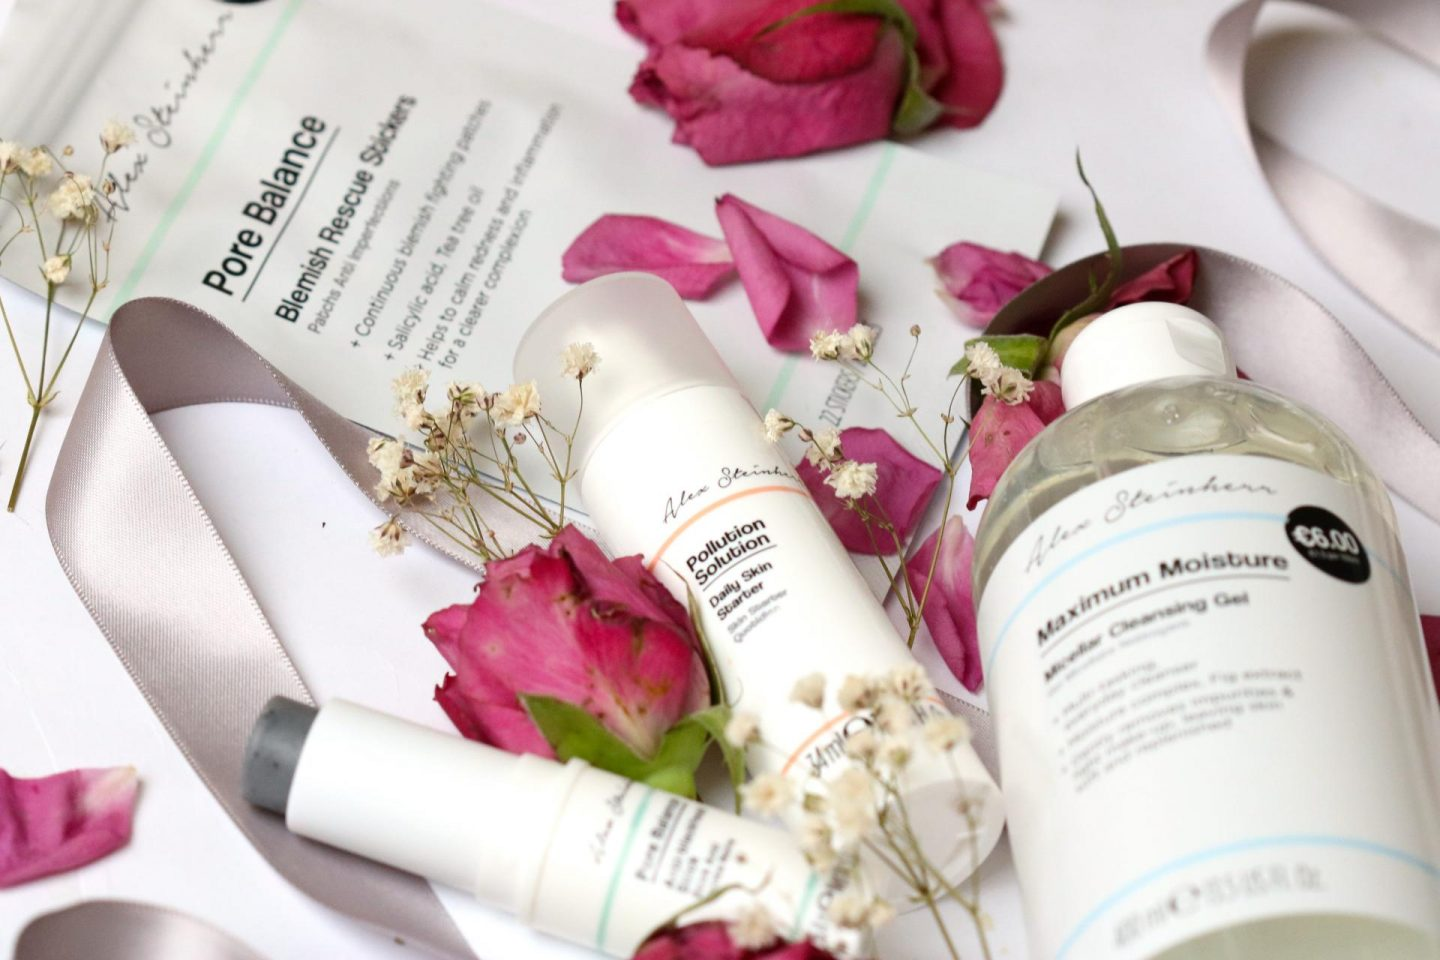 Alex Steinherr x Primark creates the ULTIMATE skincare collection